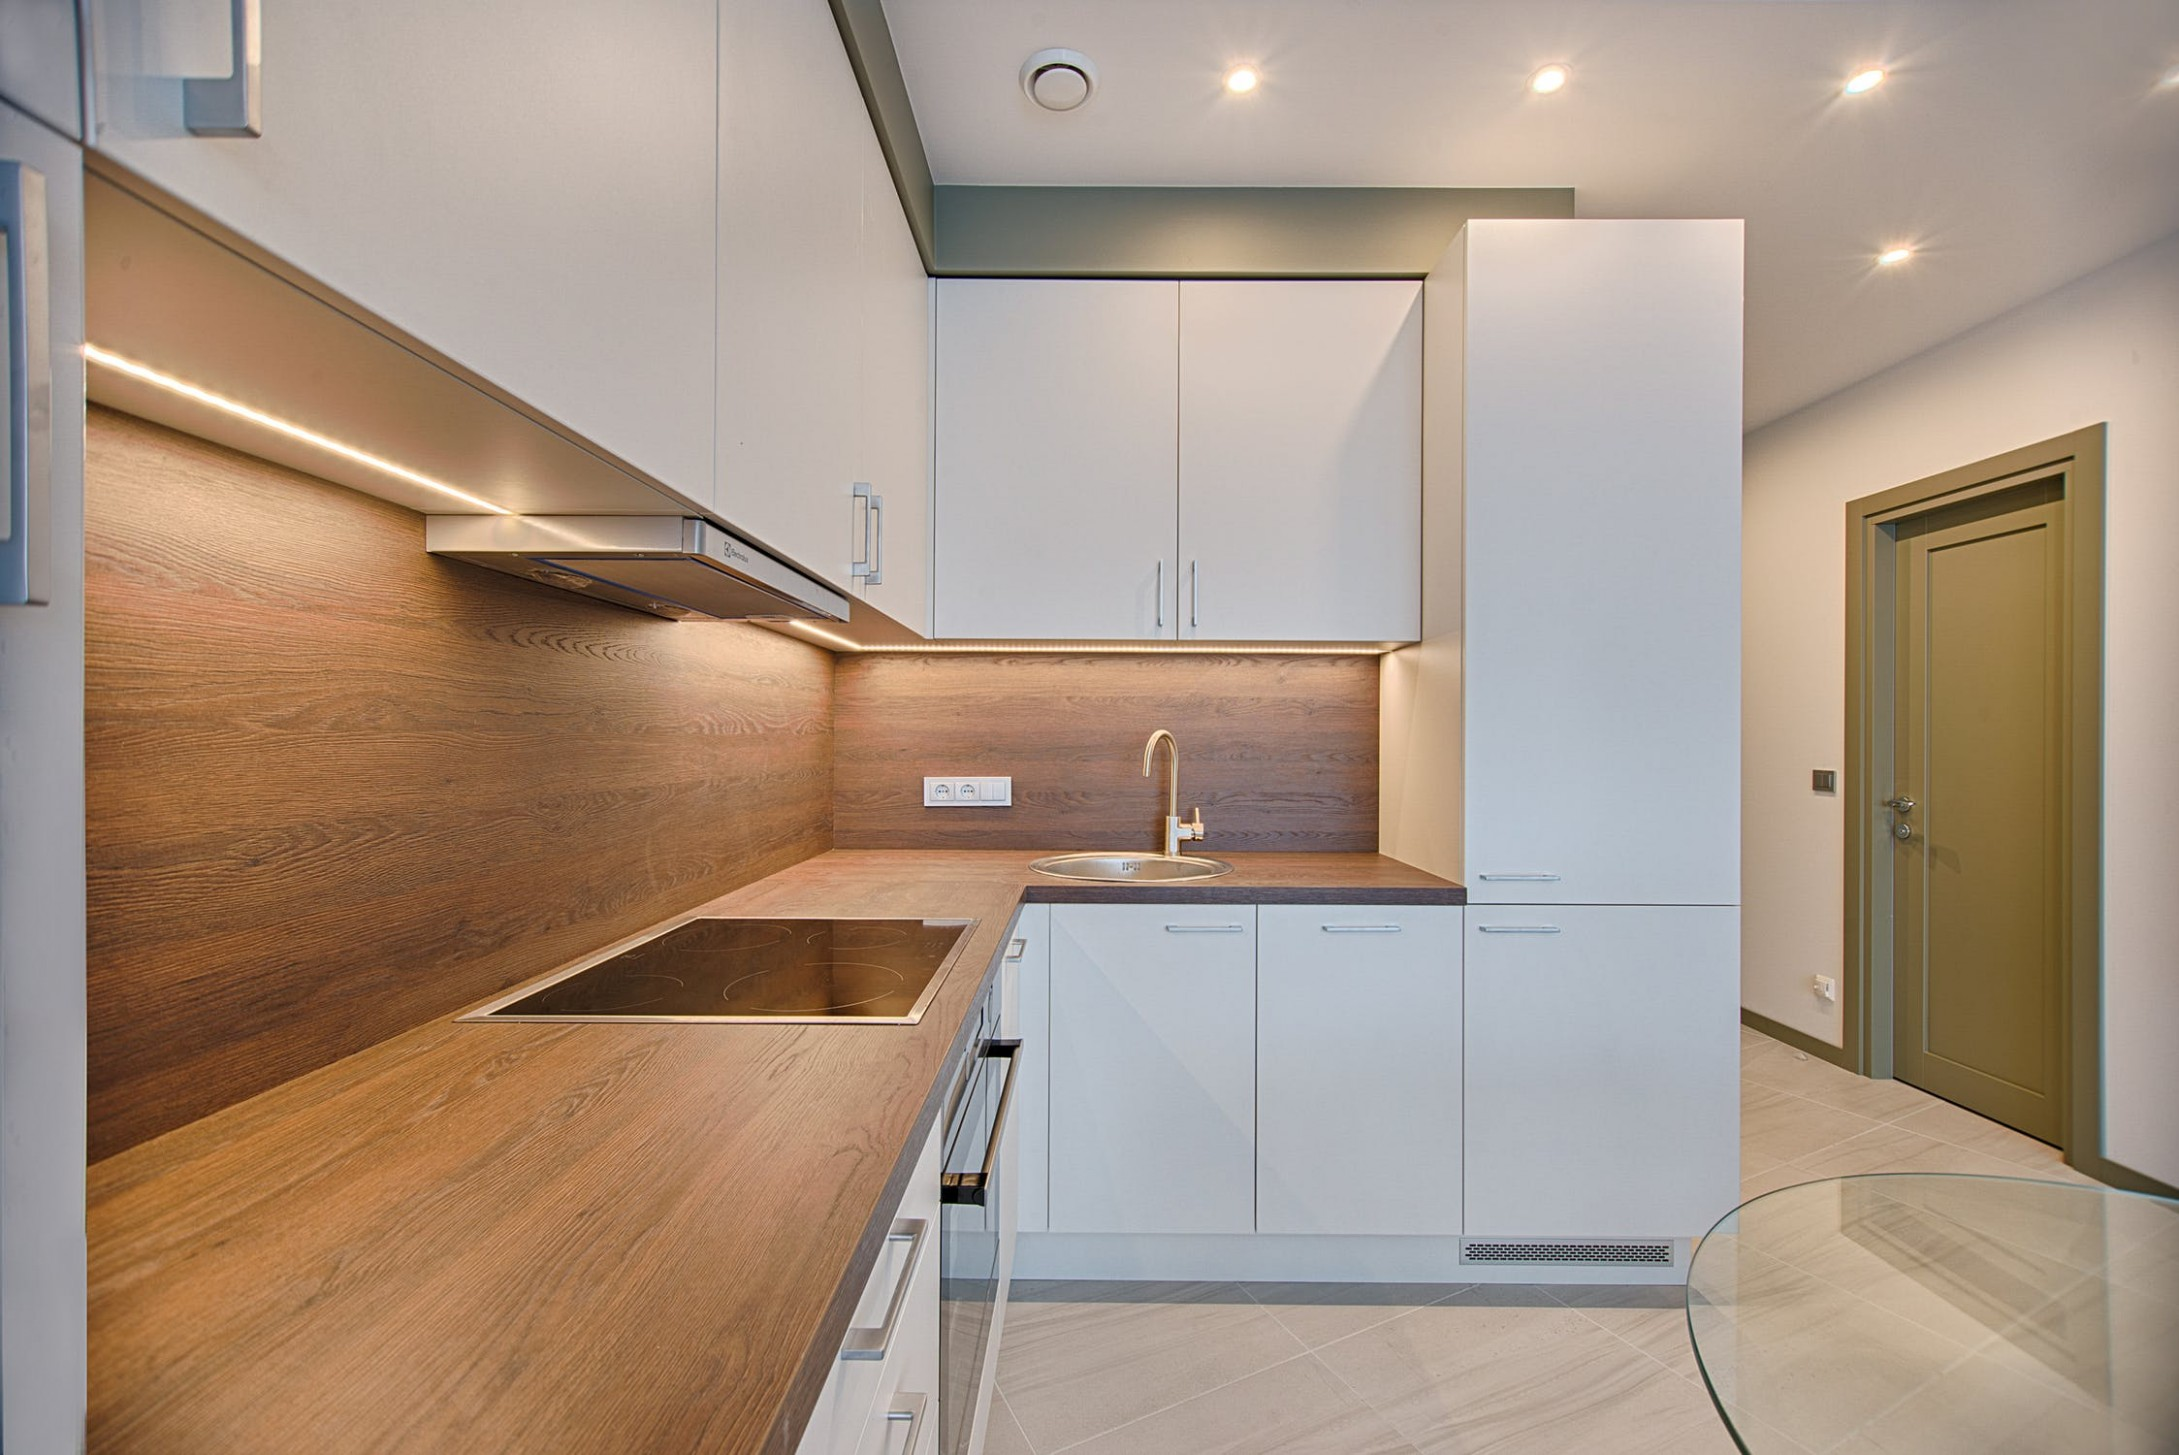 11 Apartment Trends Developers Need to Look Out for in 11 - Apartment Design Trends